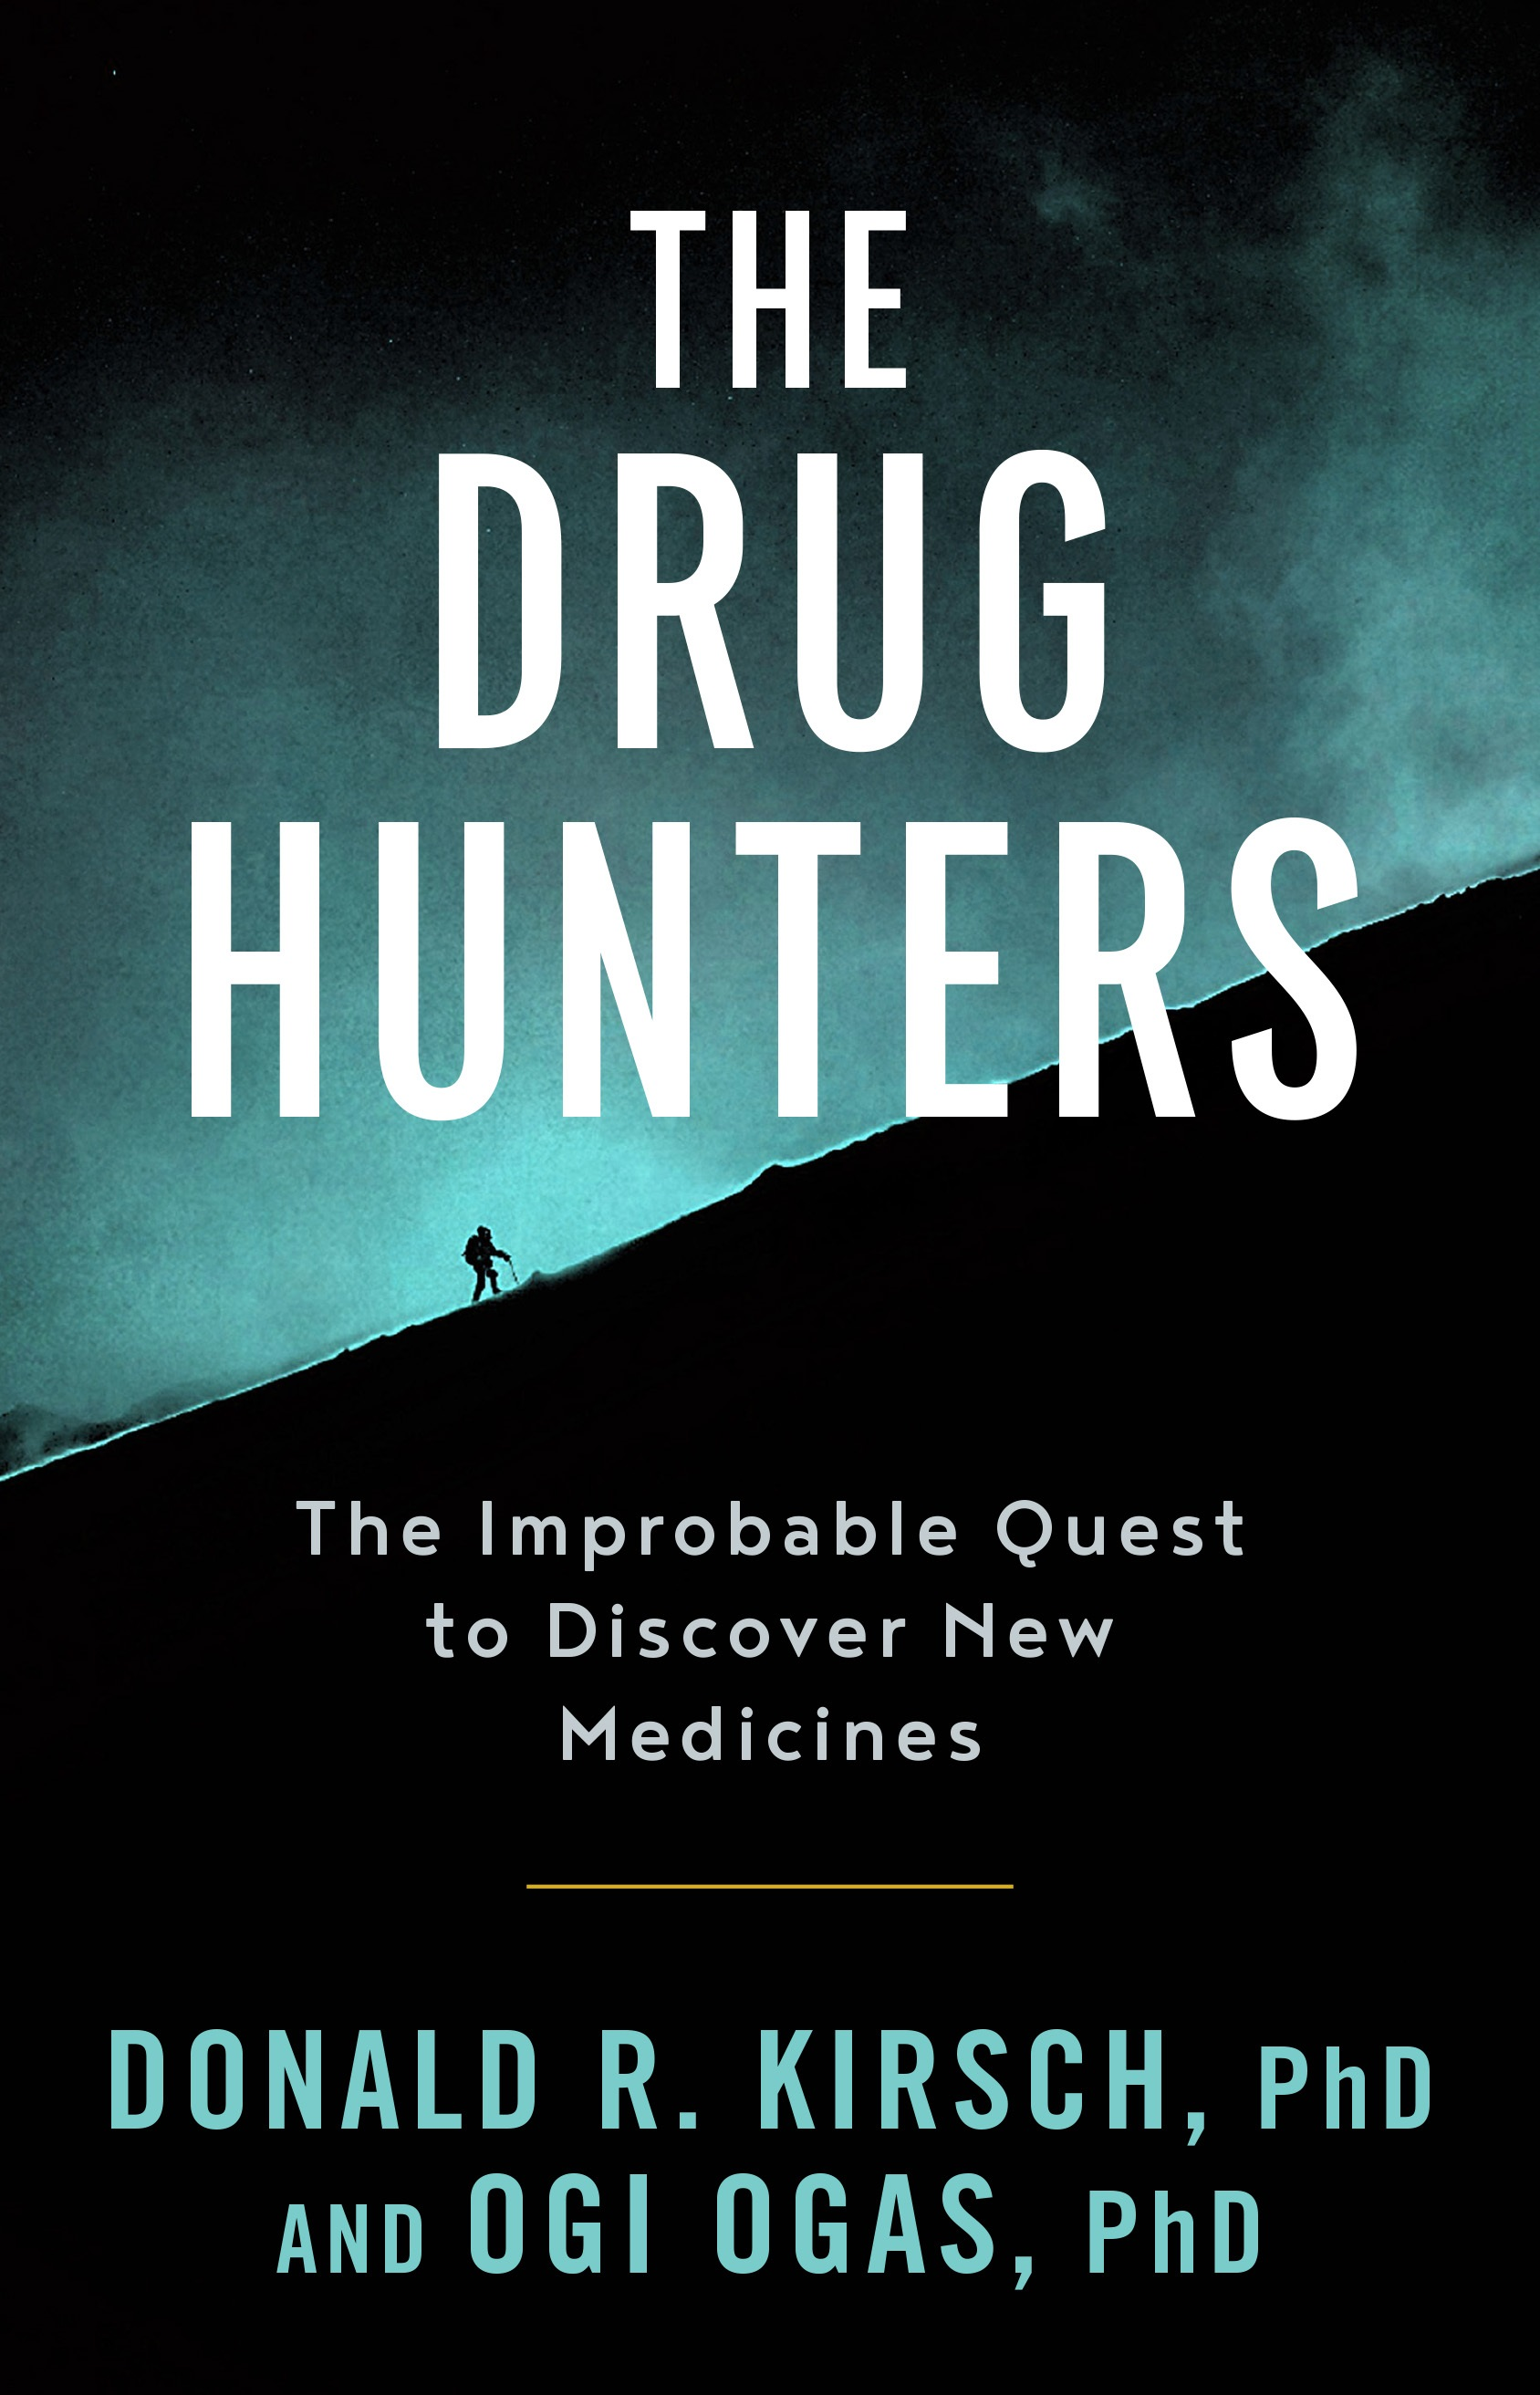 The Drug Hunters